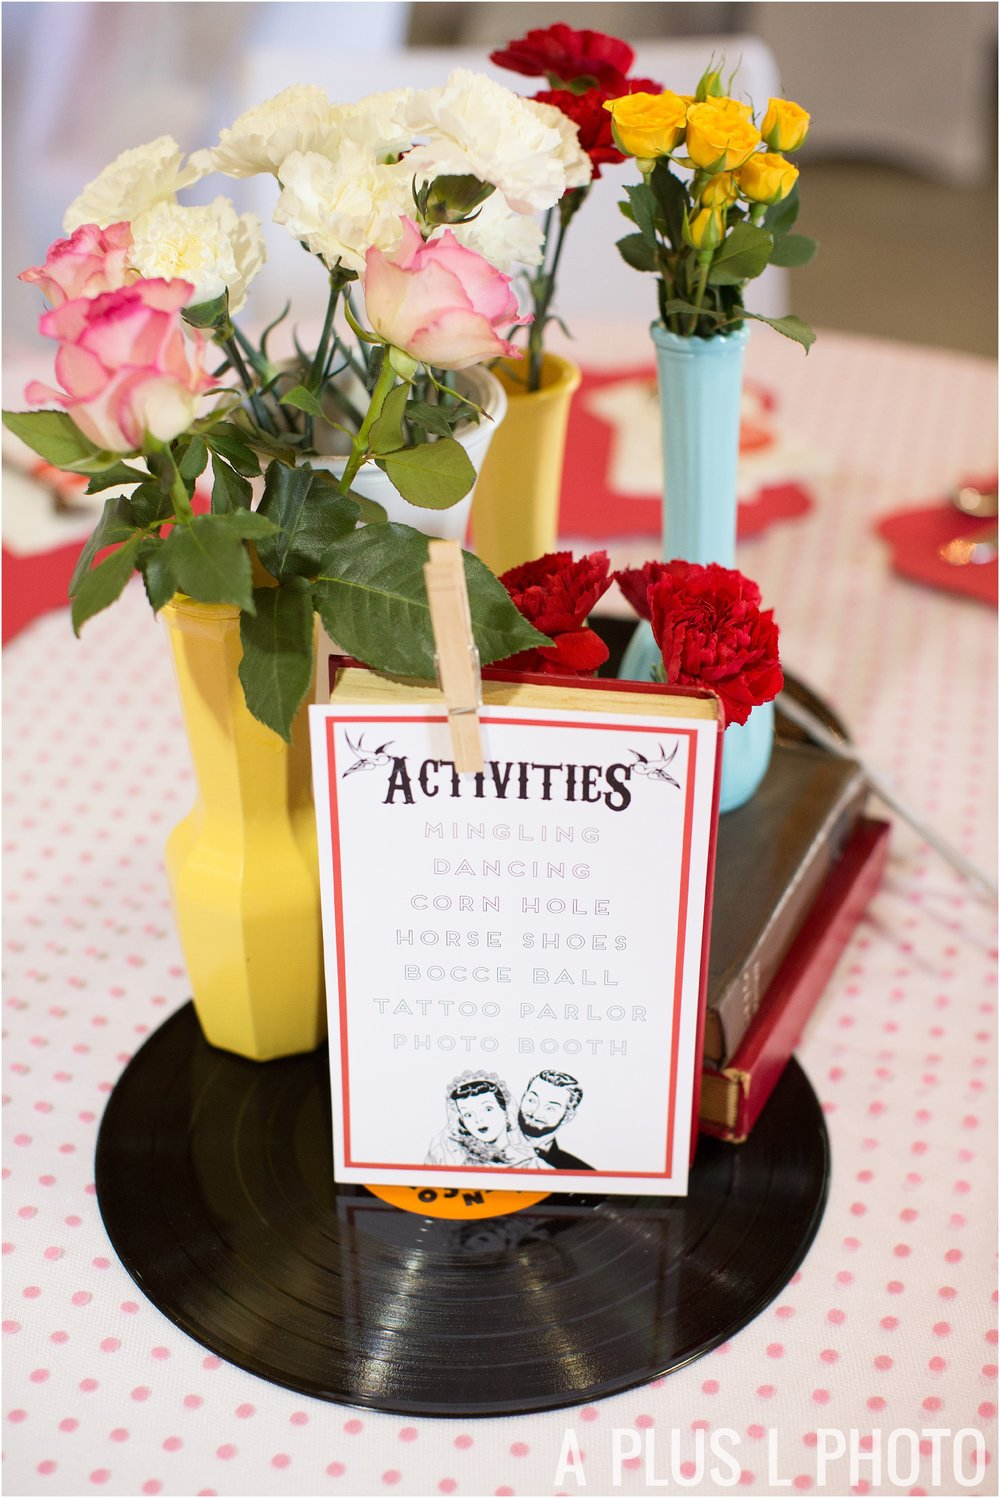 Rockabilly Wedding - Colorful Vintage Table Setting - A Plus L Photo